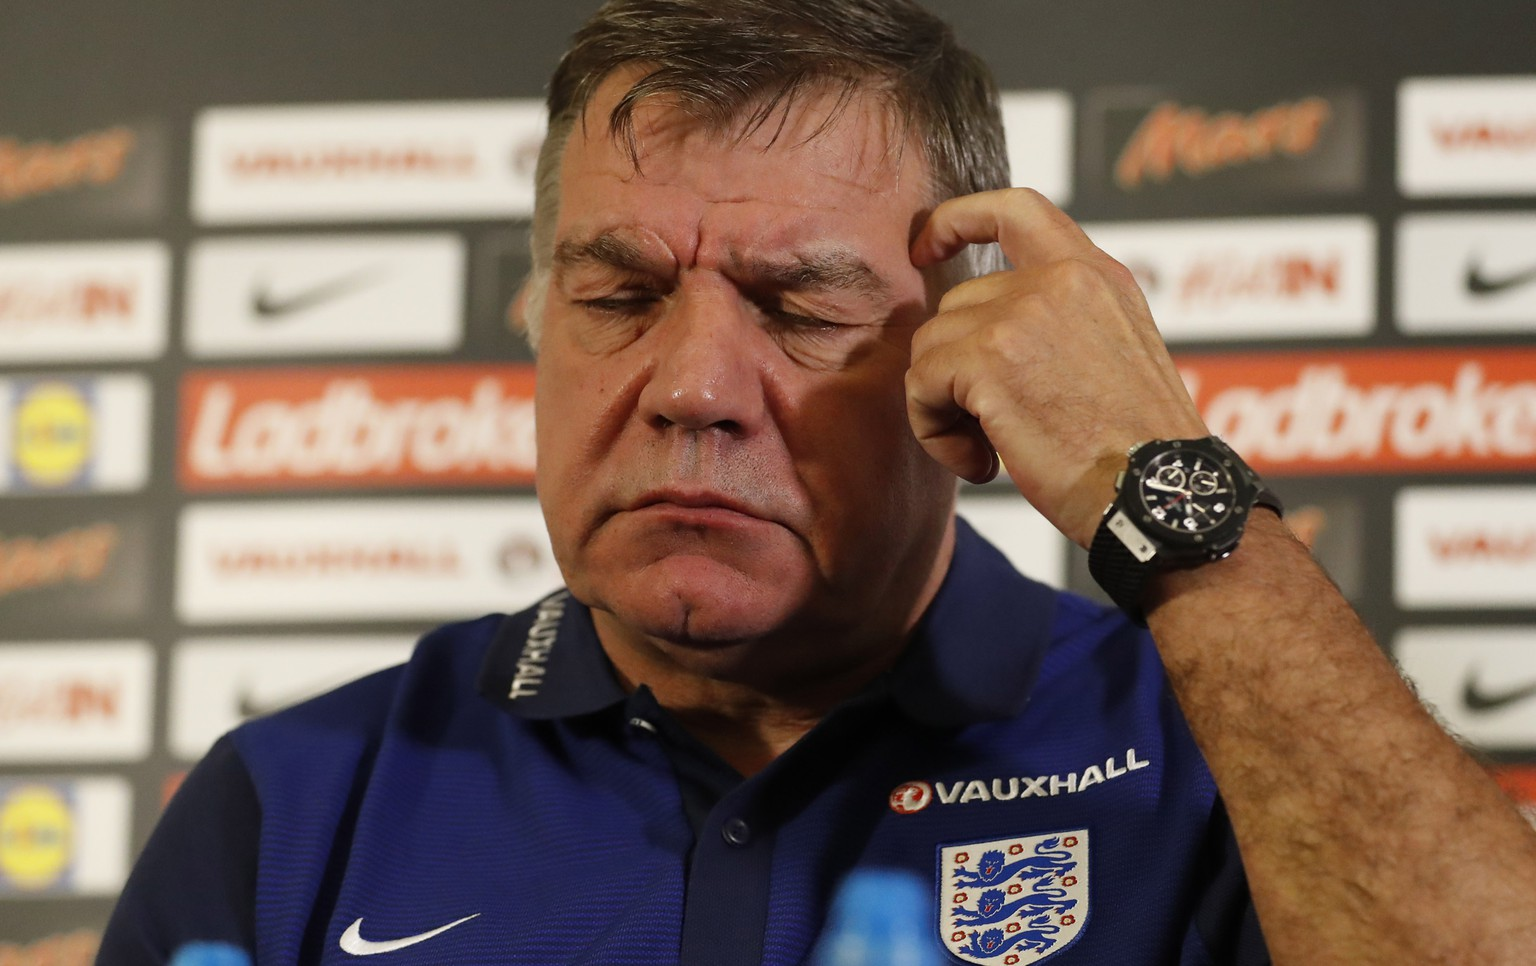 Britain Football Soccer - England - Sam Allardyce Press Conference - St. George's Park - 29/8/16